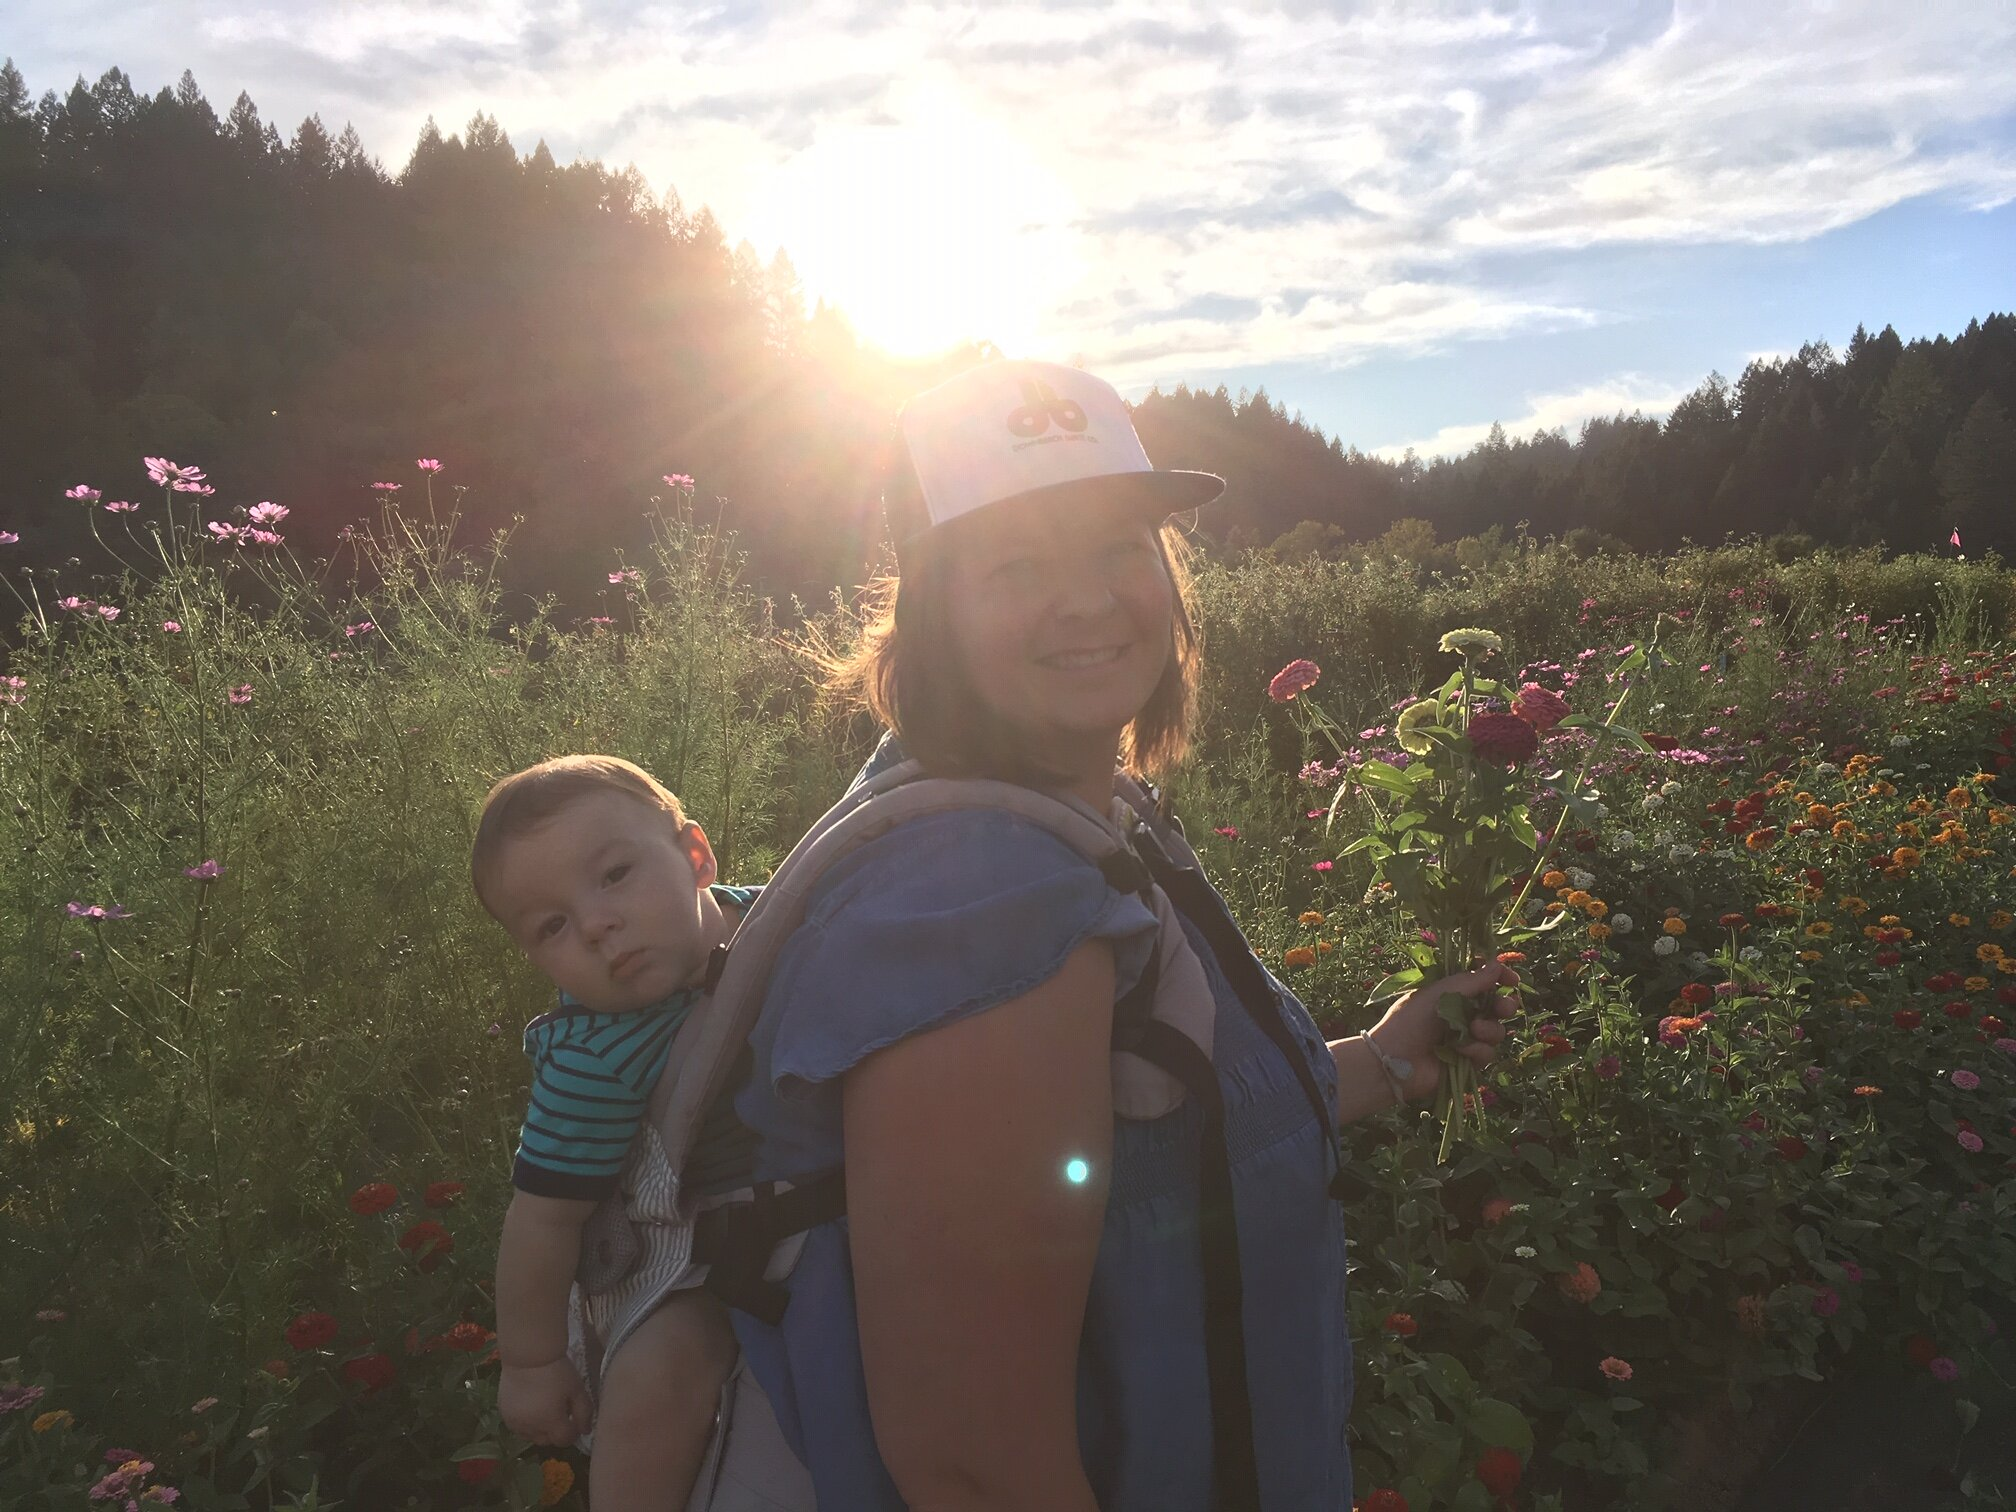 Hannah and Leland picking zinnias at golden hour